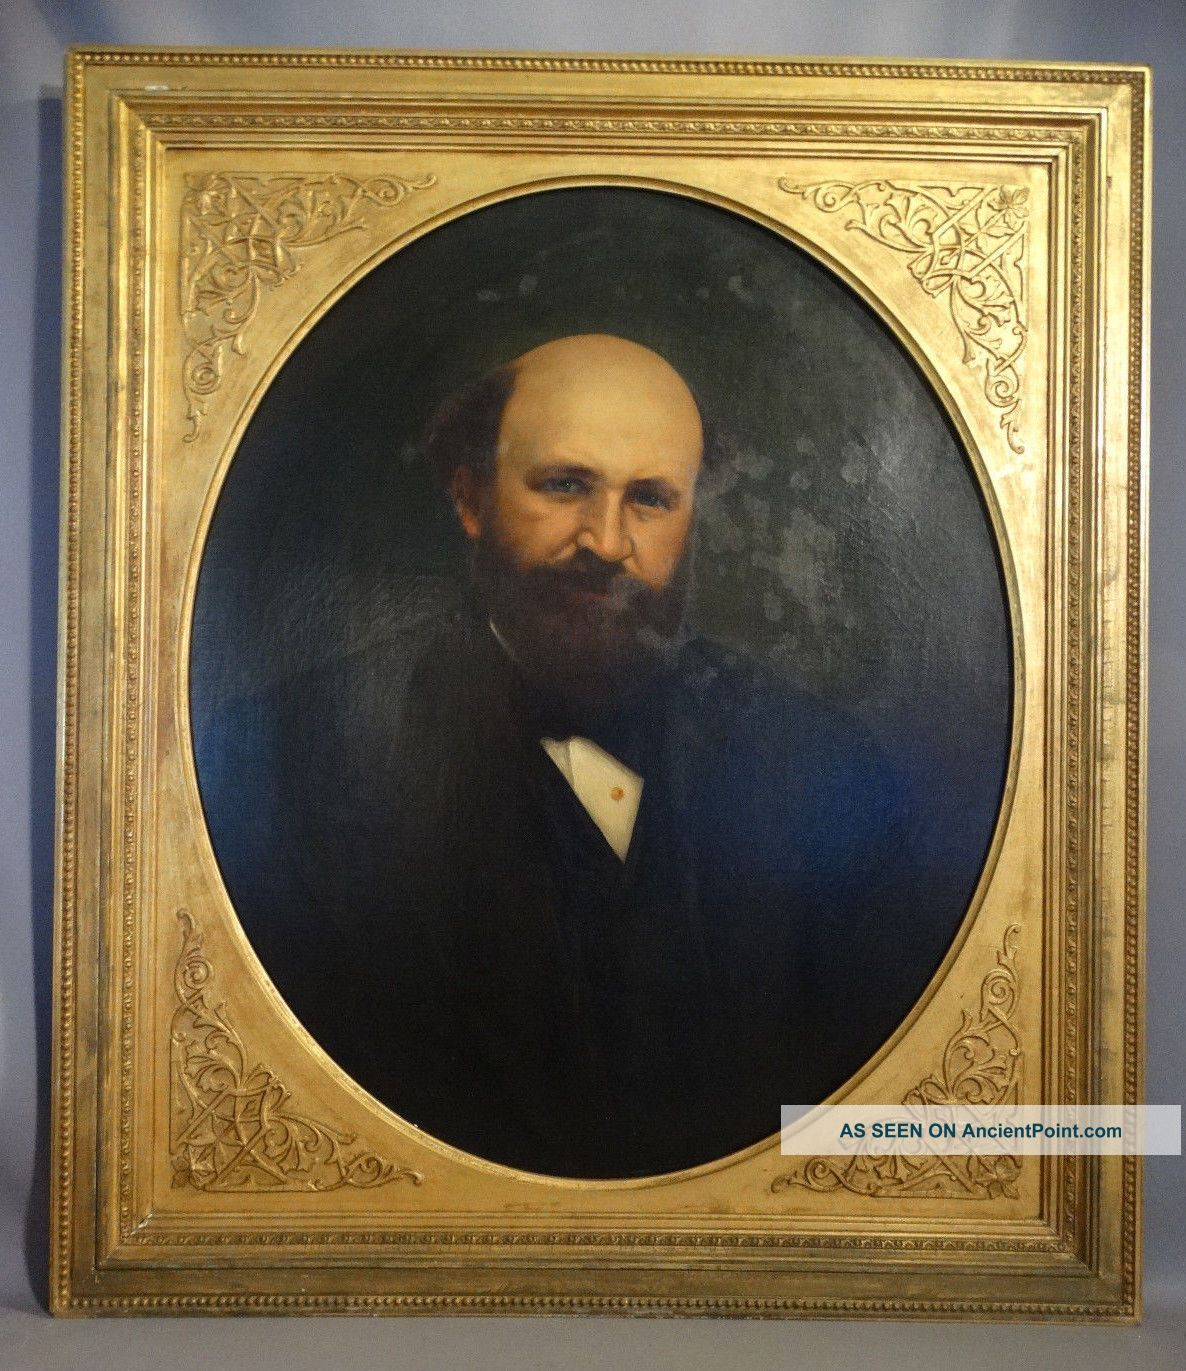 Antique 19thc Victorian Gentleman Oil Portrait Painting Carved Wood Floral Frame Primitives photo